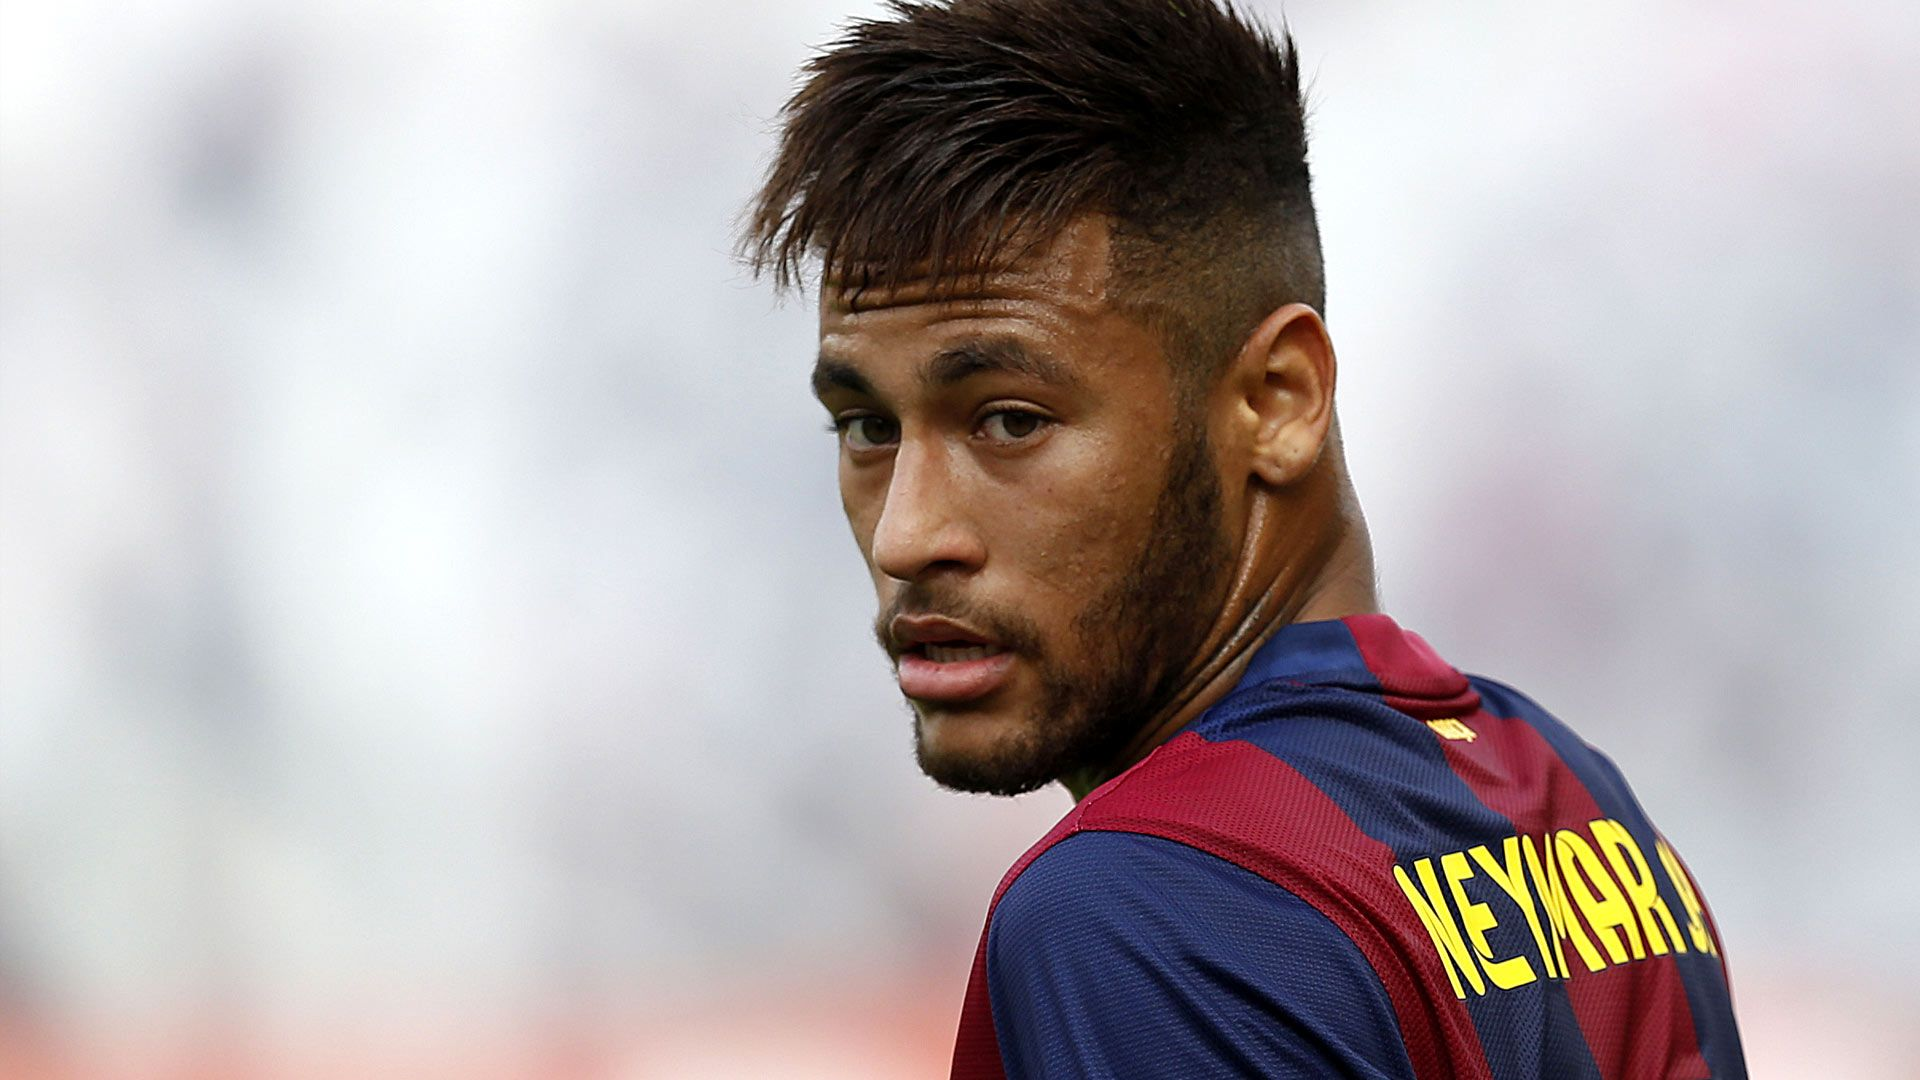 1000 Images About Neymar On Pinterest Seasons Coiffures And Messi